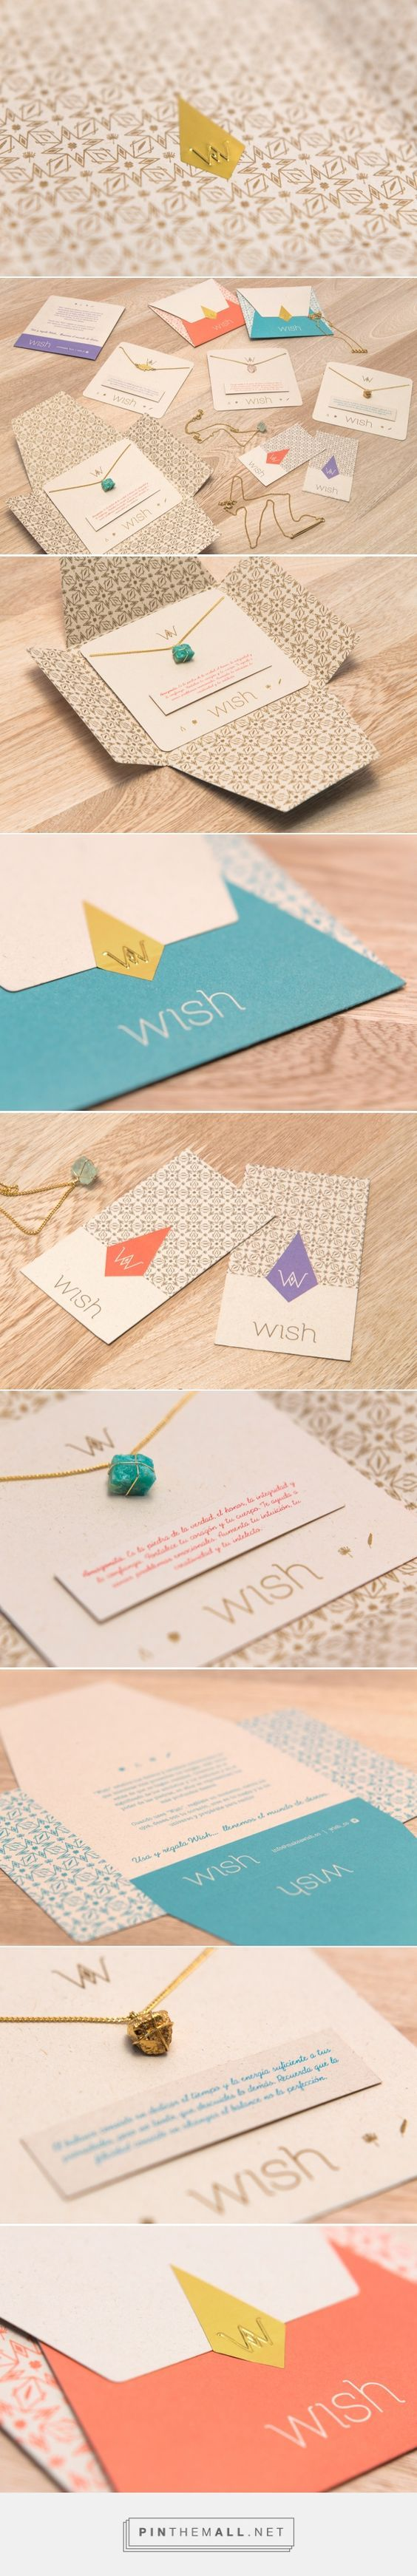 Wish Branding on Behance